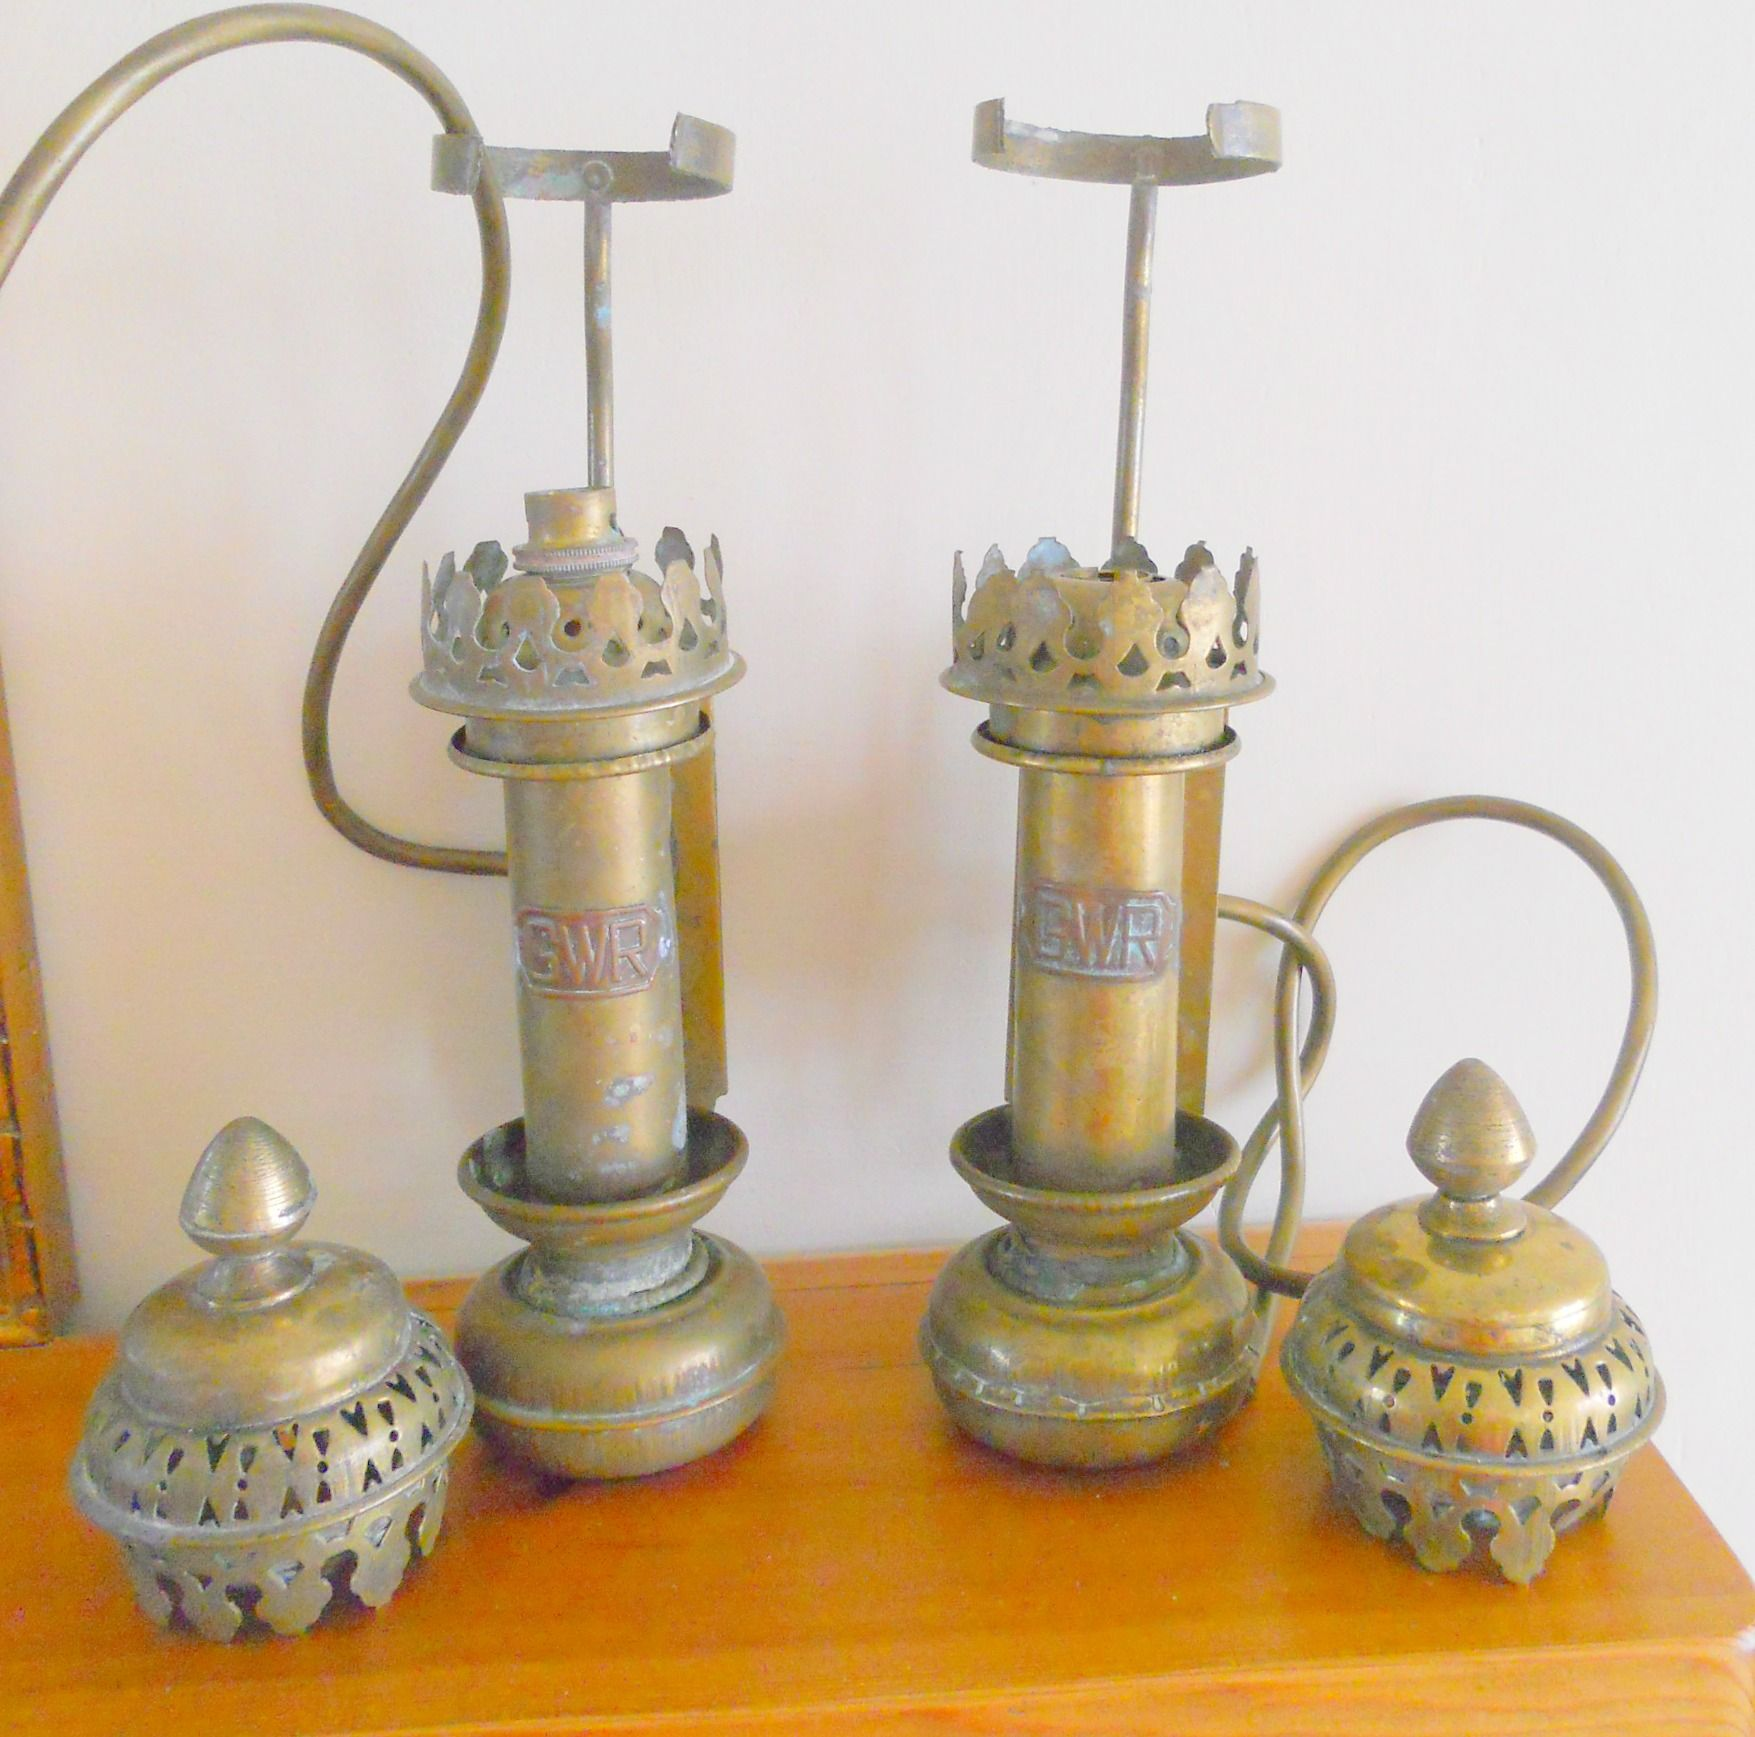 Vintage Br Great Western Railways Carriage Lamps Sold On My Ebay Site Lubbydot1